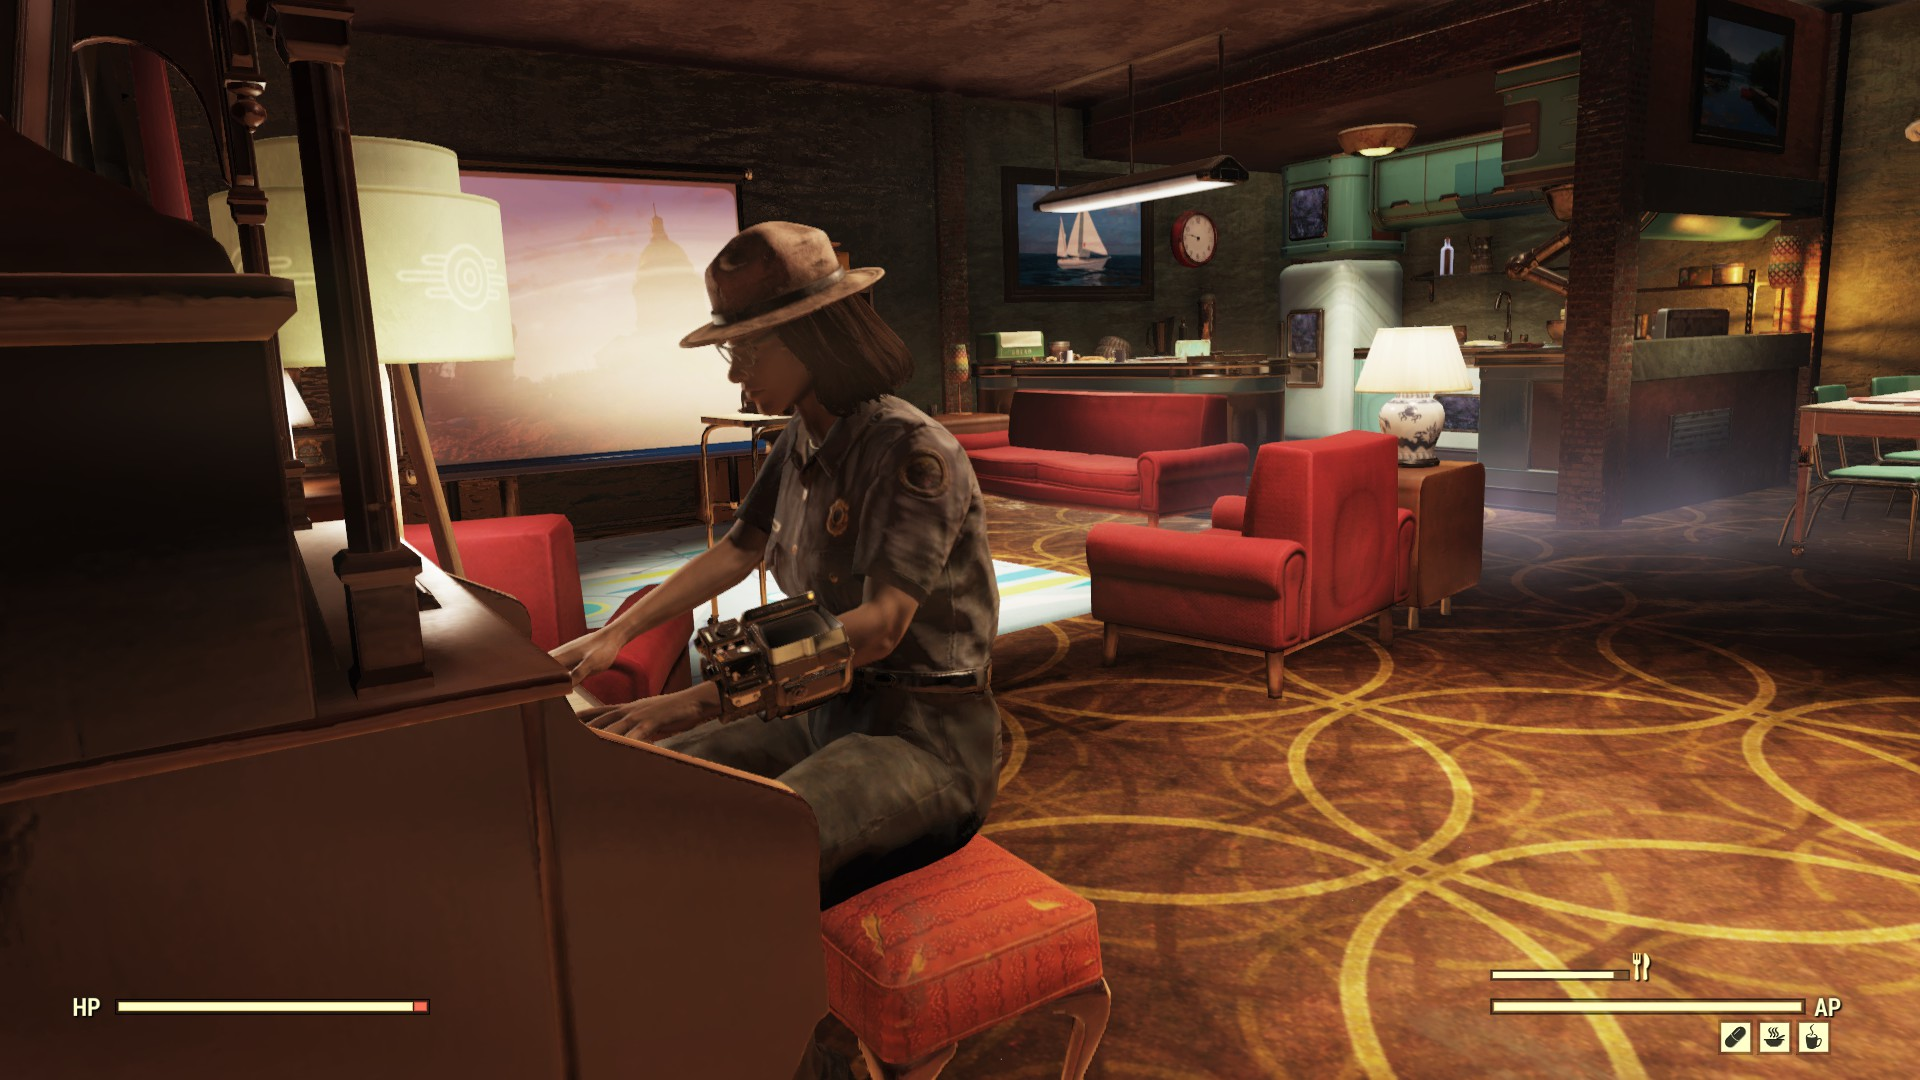 A player character sitting at a piano in a gloomy lounge (clearly an opulent lounge by post-apocalyptic standards though